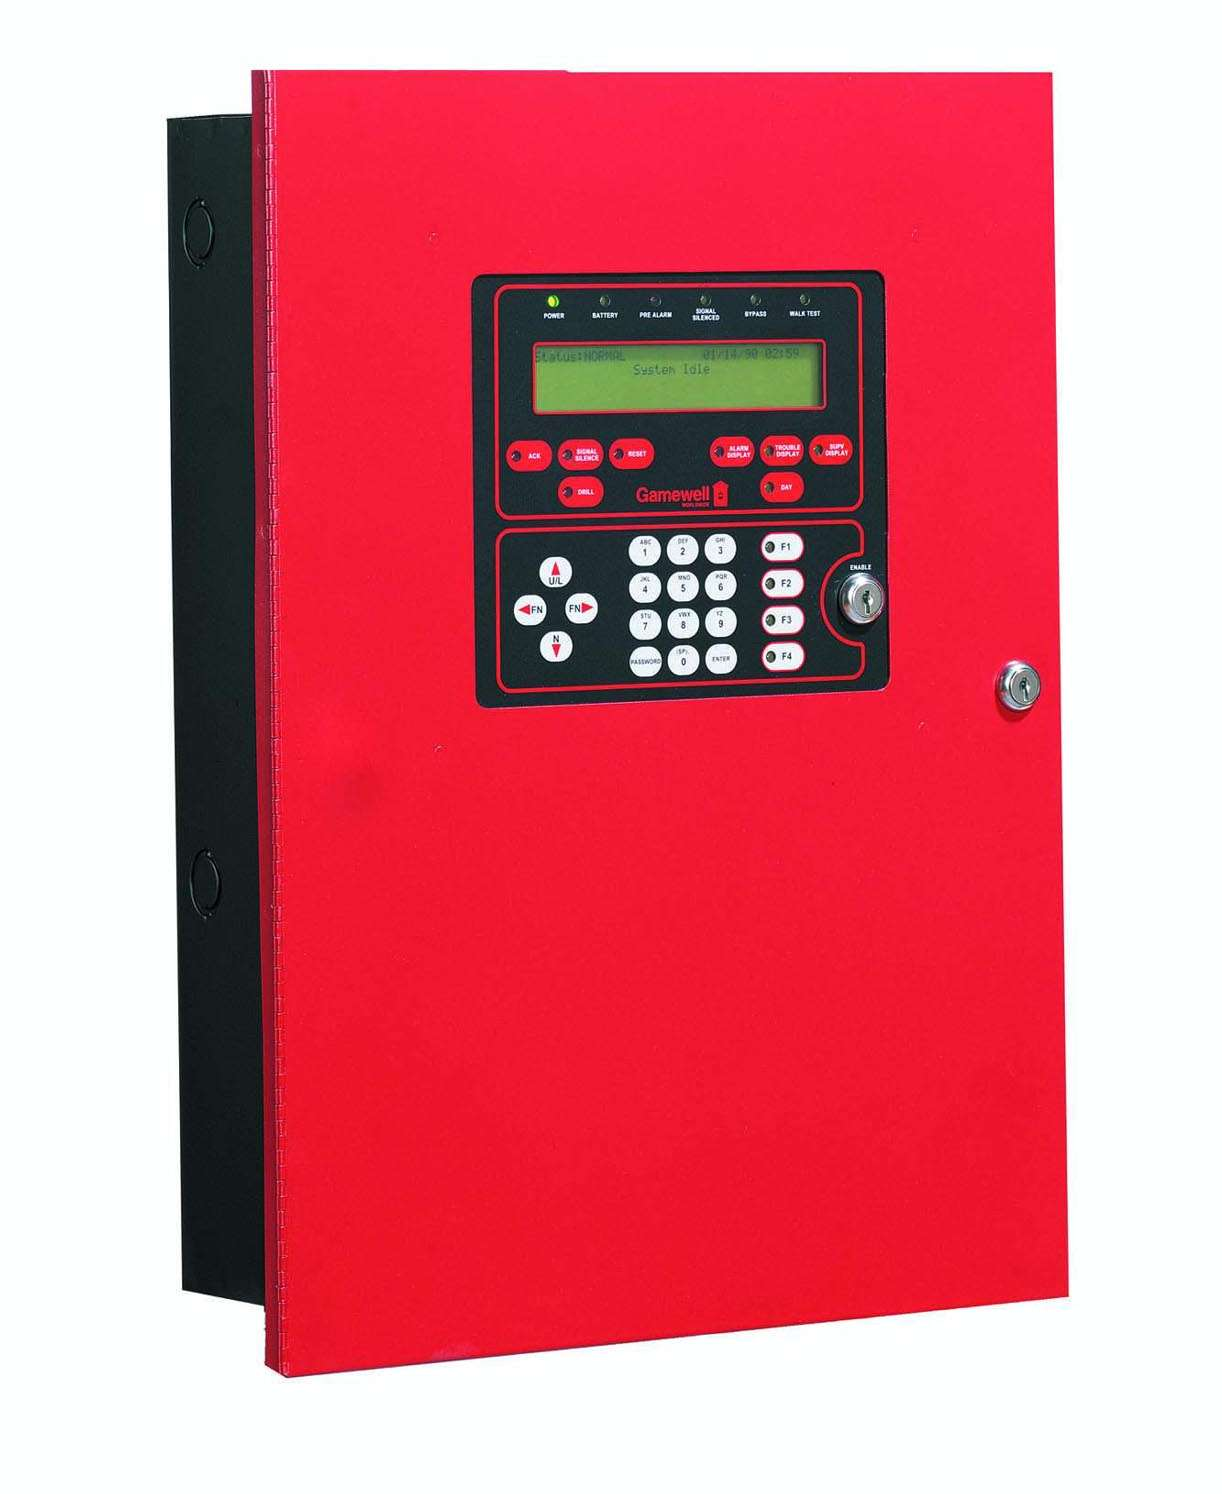 Fire Alarm Control Panel Suits Small Med Sized Installations 27329 on type a fire alarm wiring